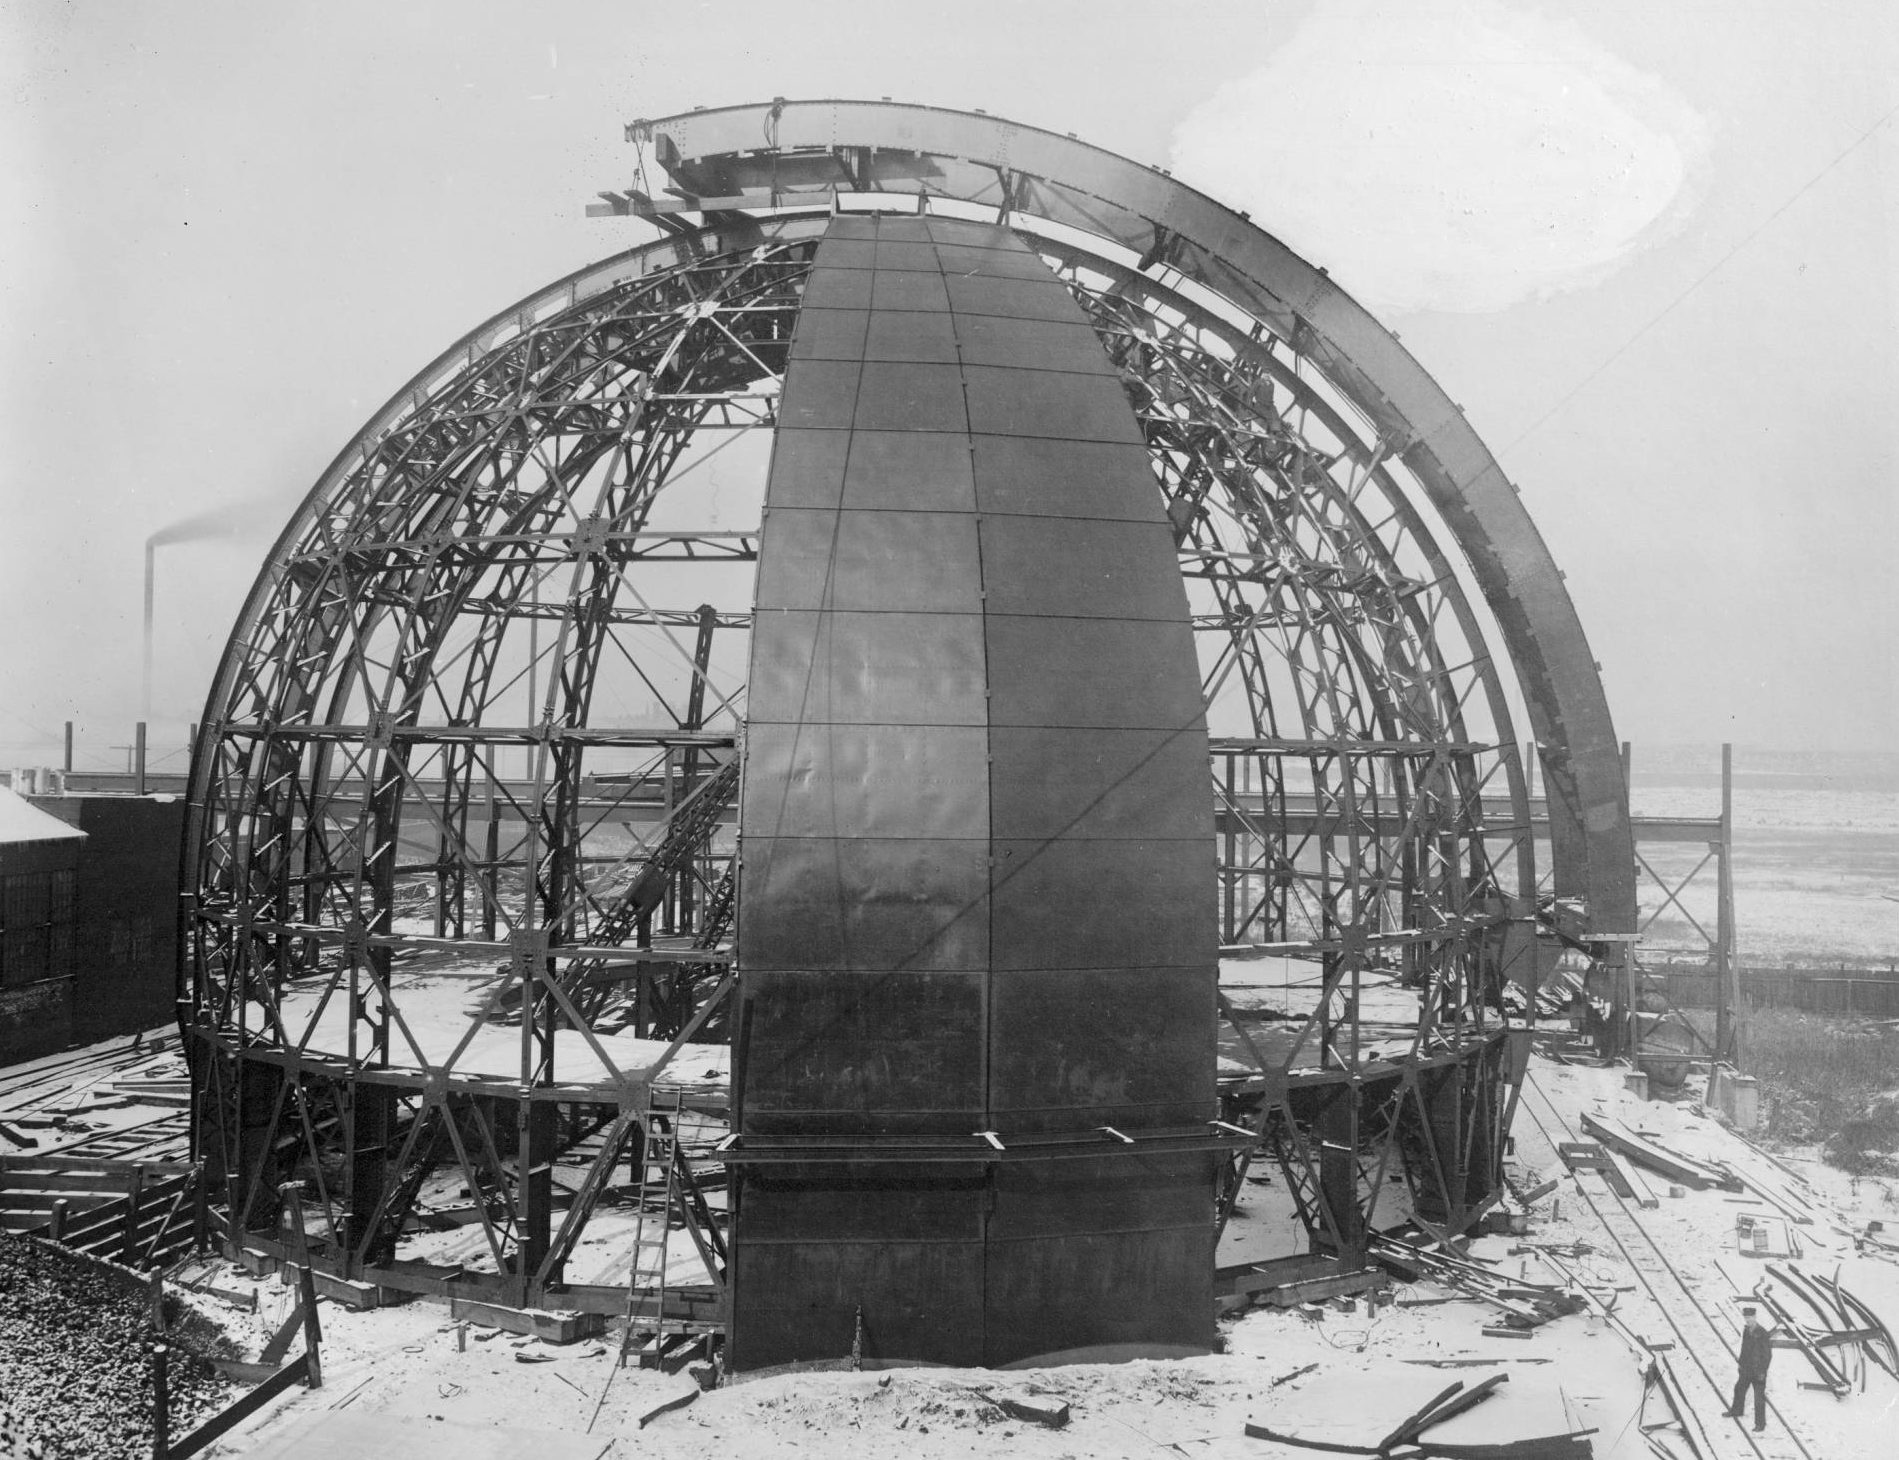 Mount Wilson Observatory Building The 100 Inch Telescope Mack Truck Mirror Heaters Wiring Diagram Dome Was First Assembled In Chicago To Make Sure Everything Fit Properly Before Transporting It Note Smokestack Background